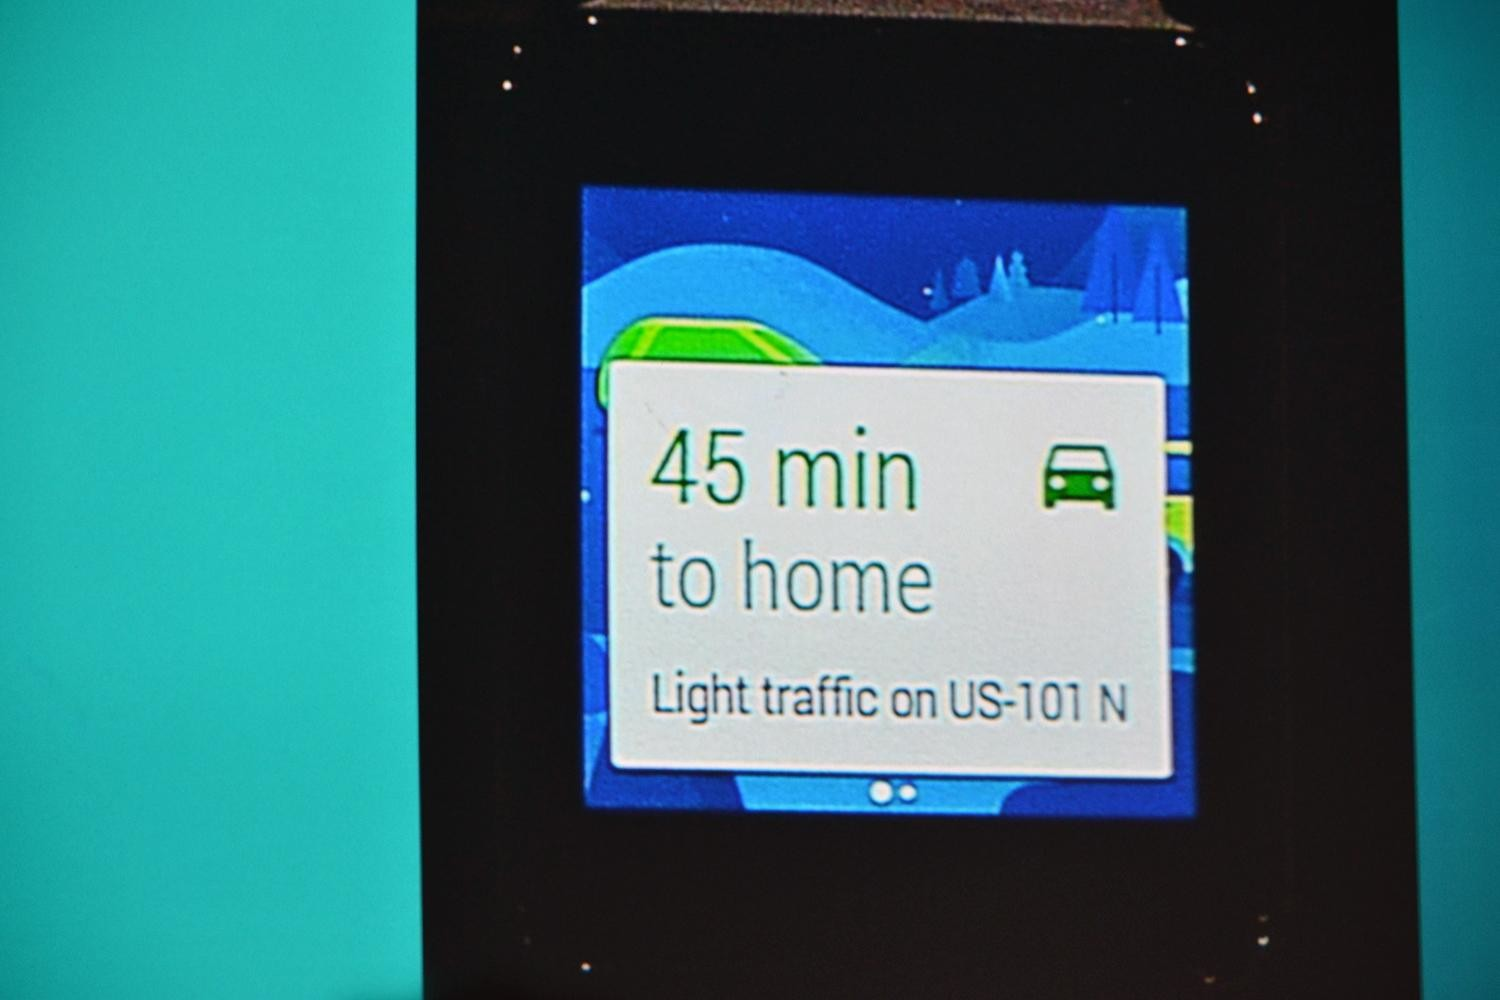 android wear os news release features 0121